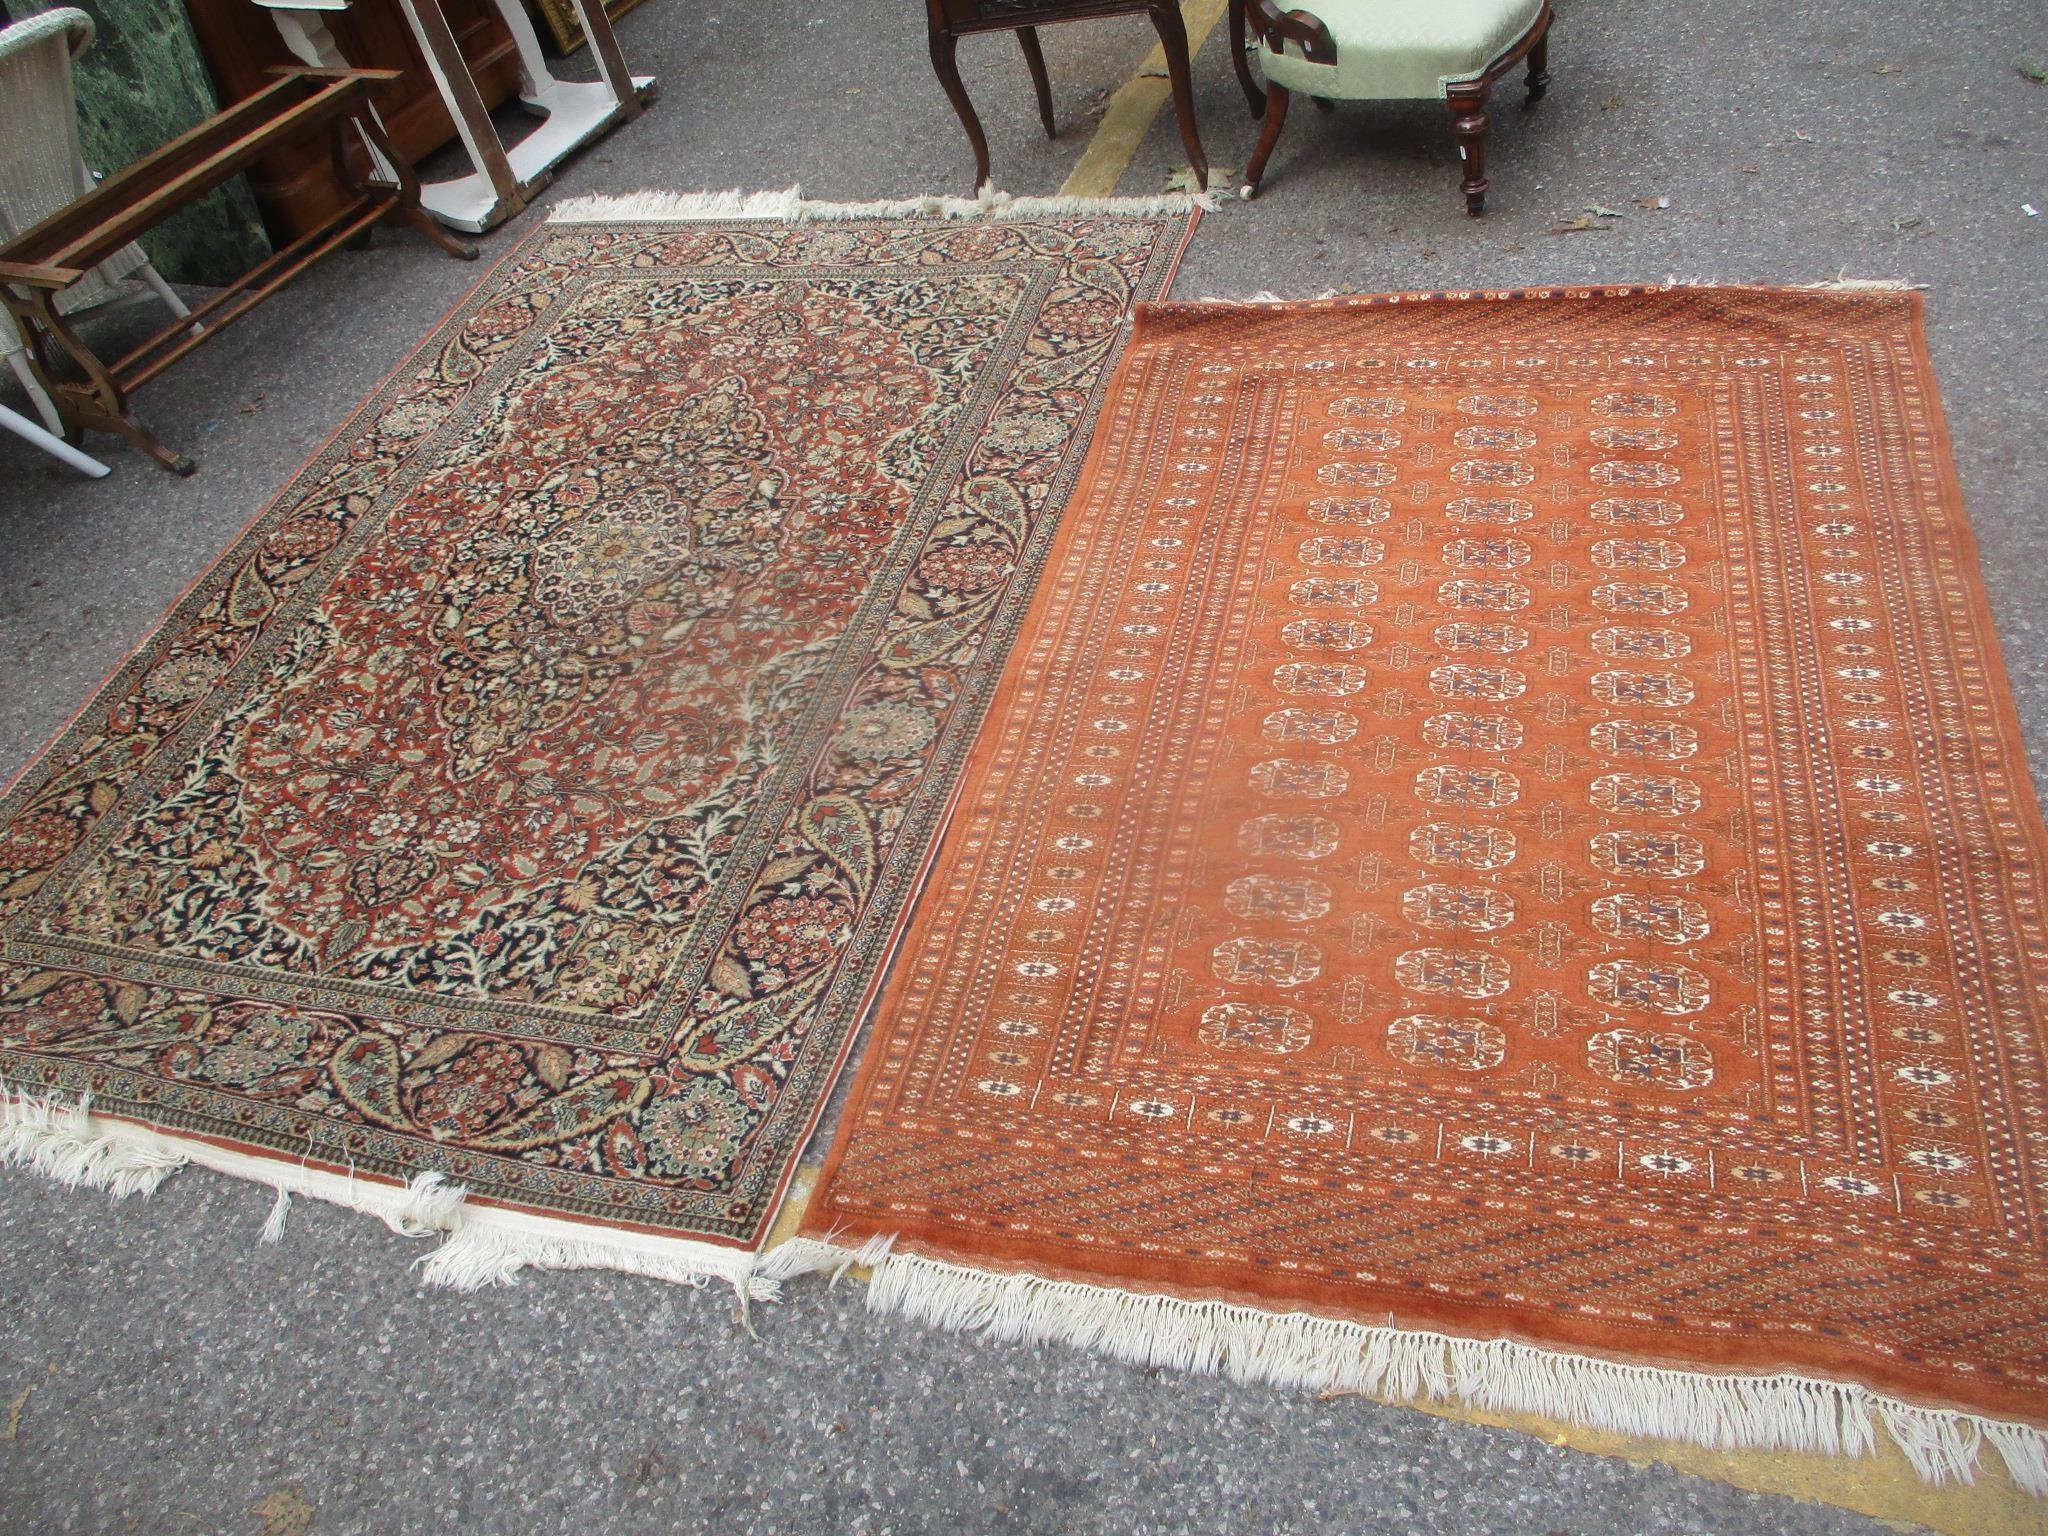 Two Turkish rugs to include a red ground elephant foot motif rug, 190 x 127cm and a floral rug